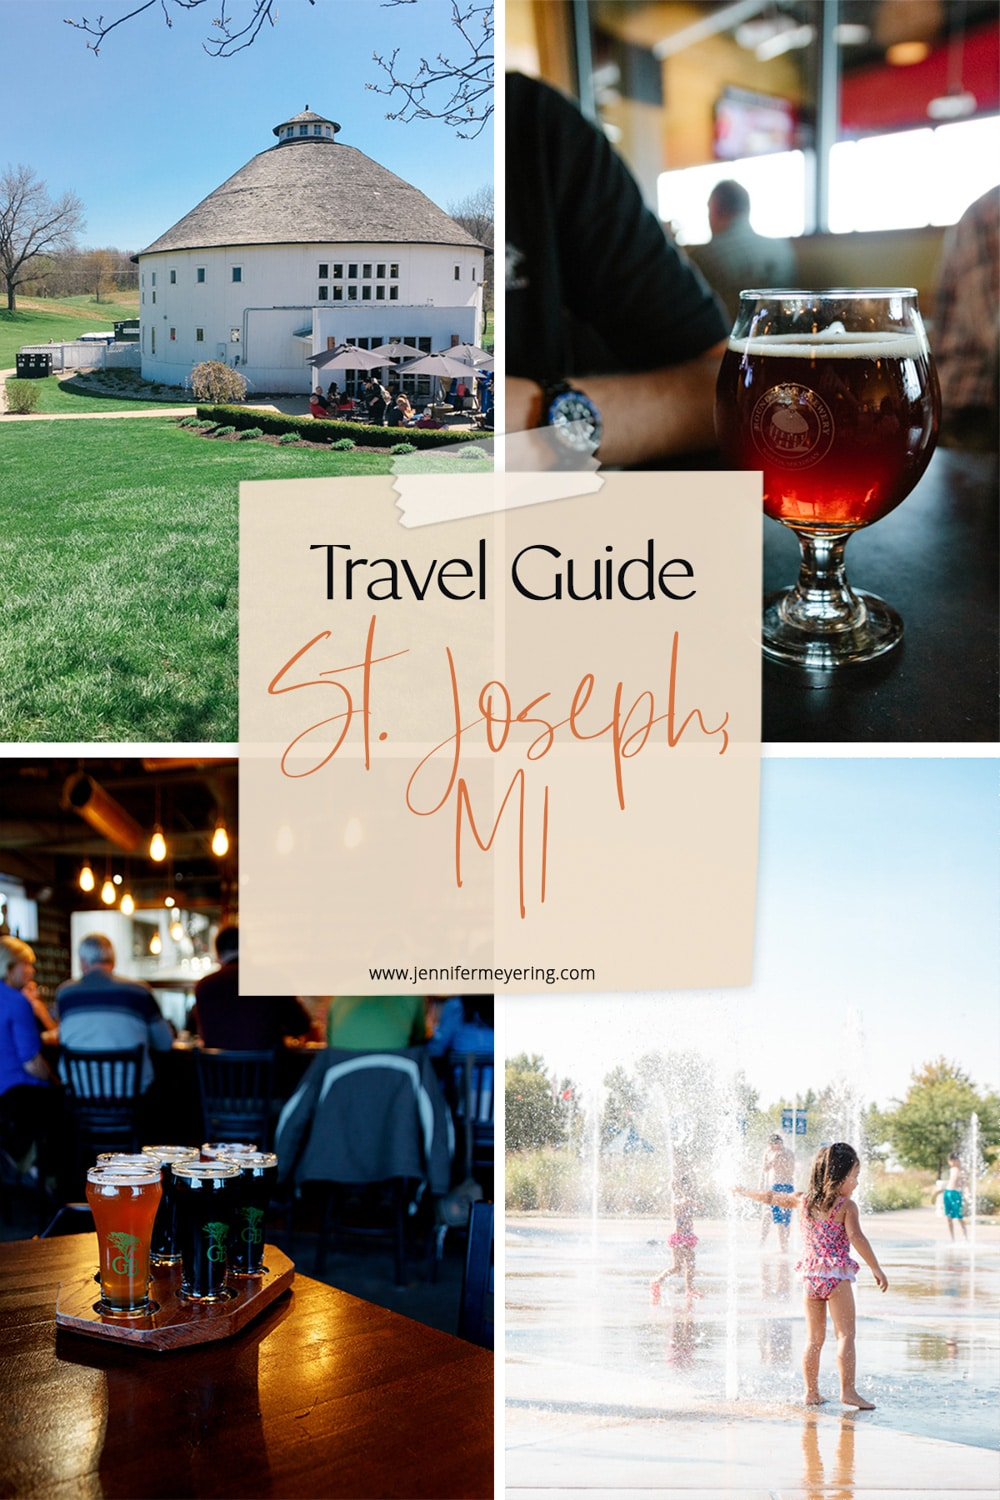 Travel Guide: St. Joseph, MI